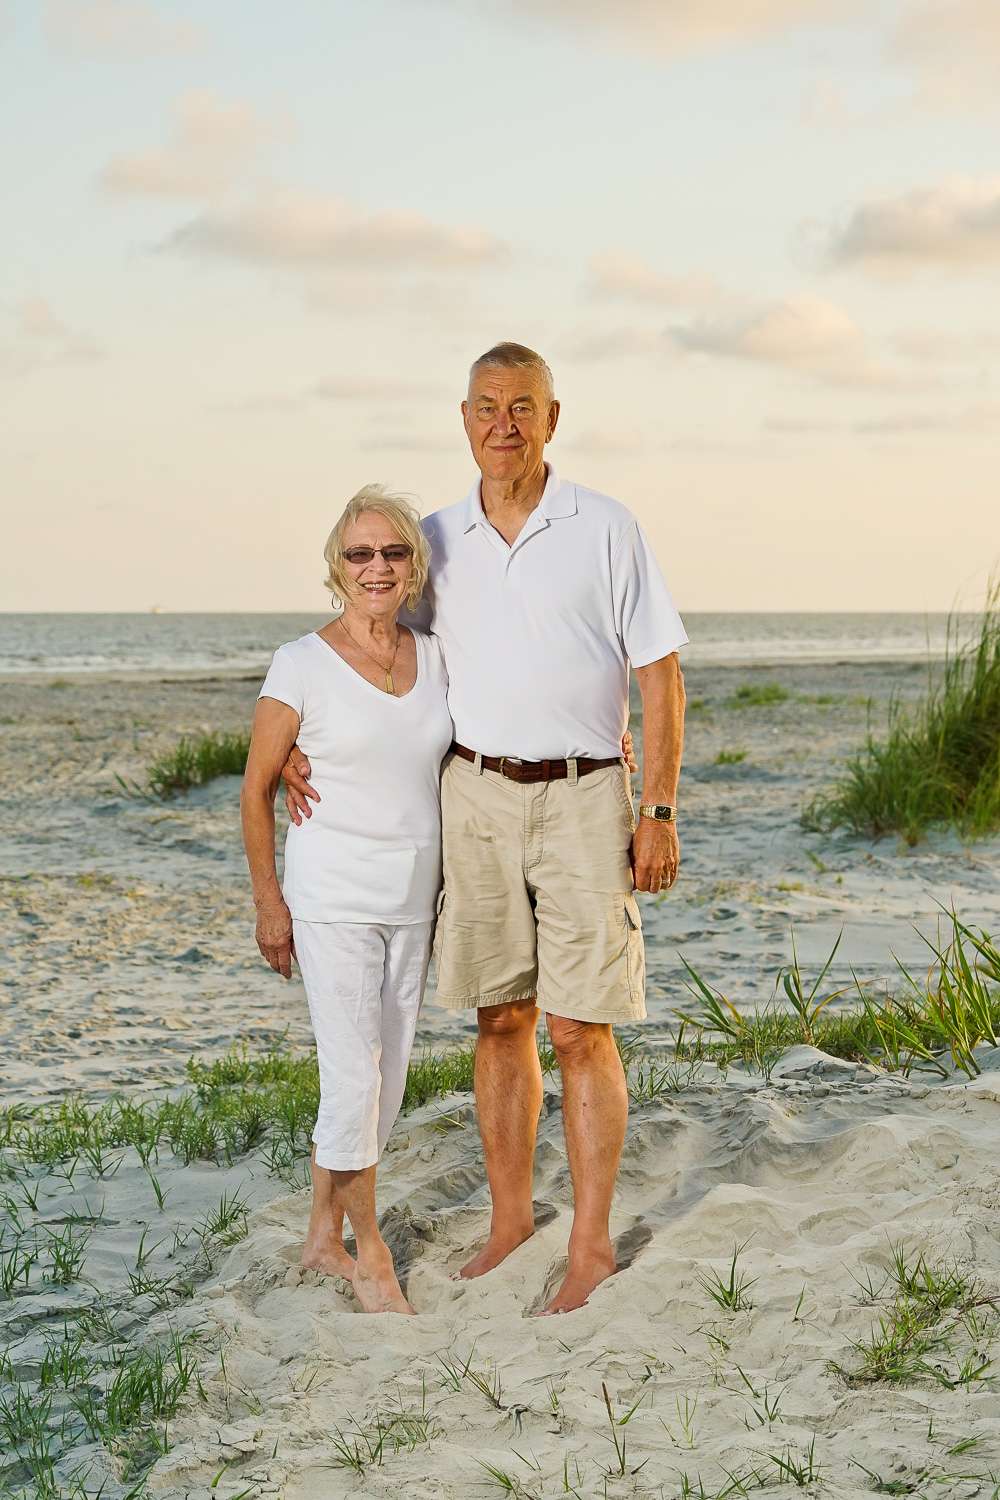 beach_portraits_beaufort-49.jpg